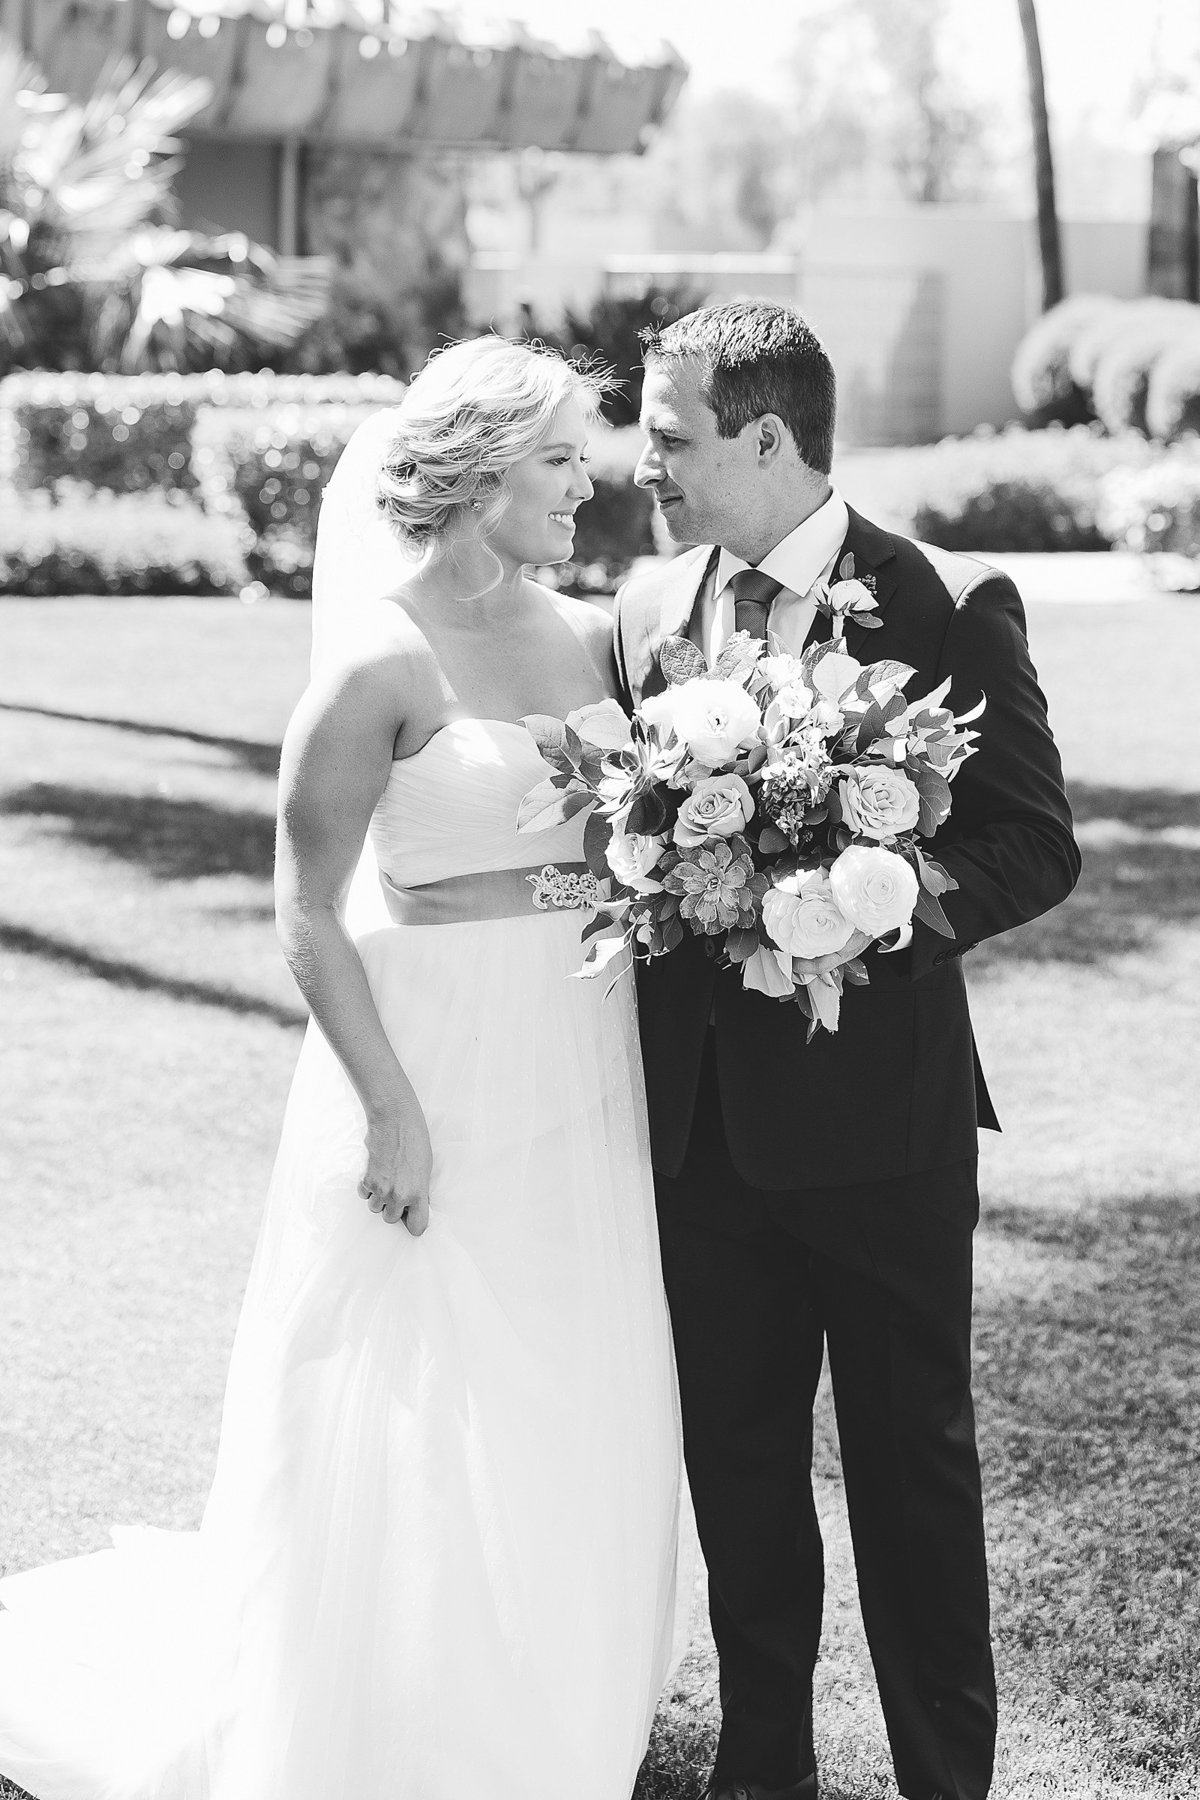 Liz + Mike - Hotel Valley Ho Wedding - Lunabear Studios - Bright and Airy Wedding Photography_0077